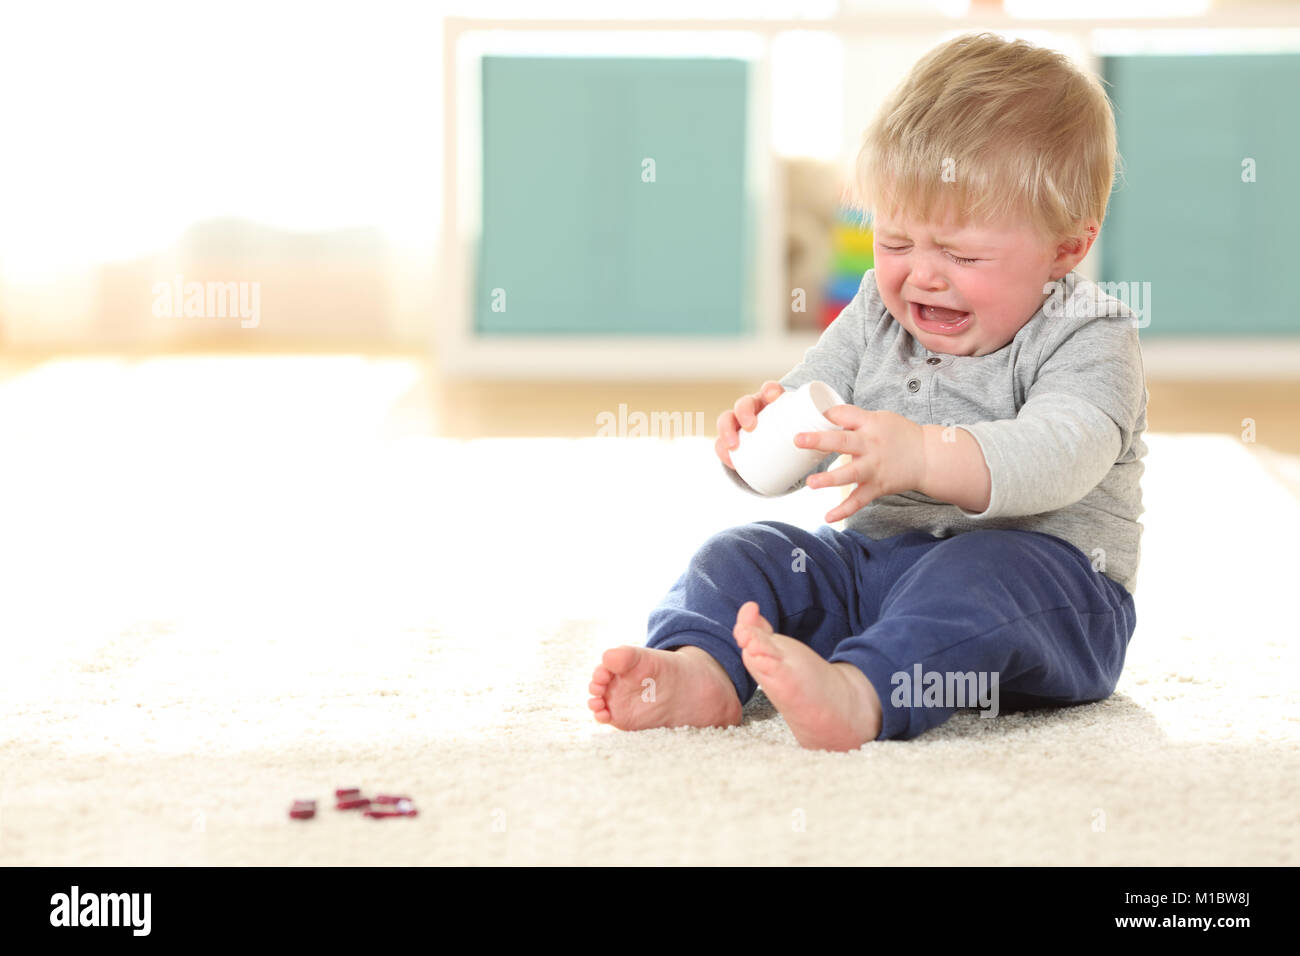 Sad Baby Crying In Danger After Eating Some Pills From A Bottle On The  Floor At Home